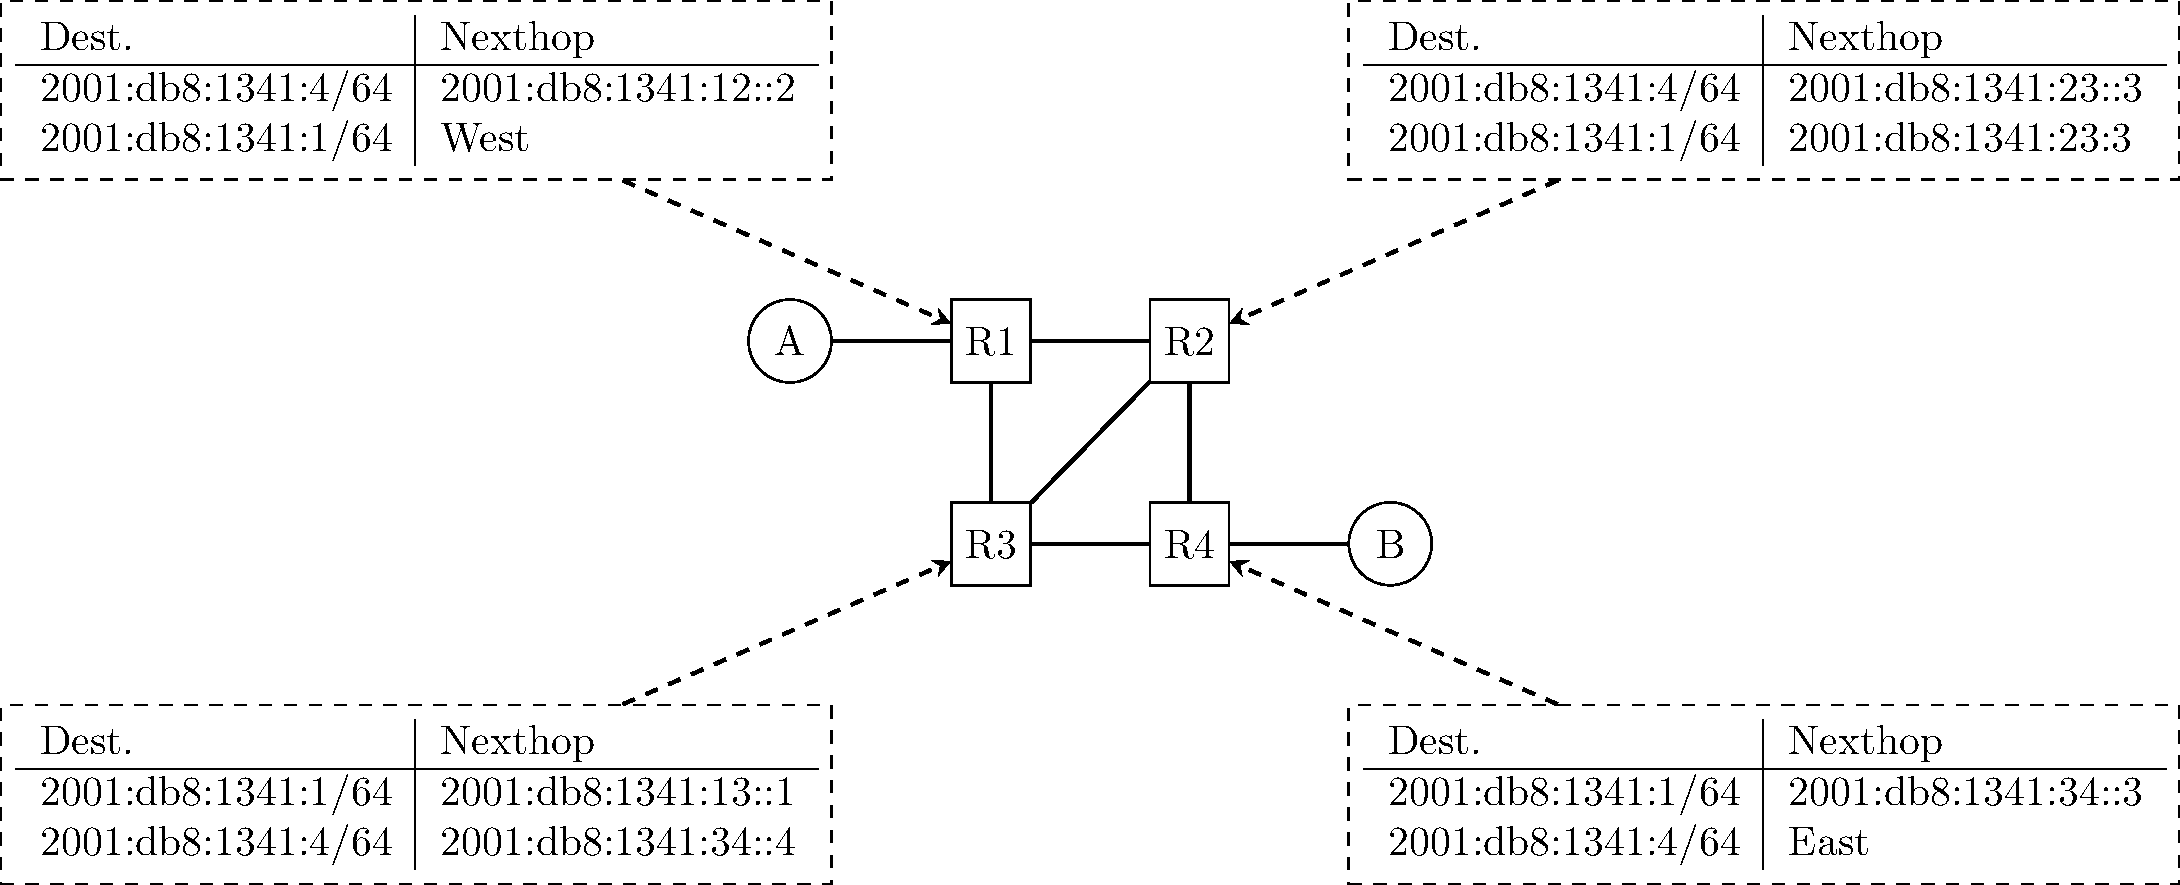 https://inginious.org/course/cnp3/q-ipv6-static-2/figure.png